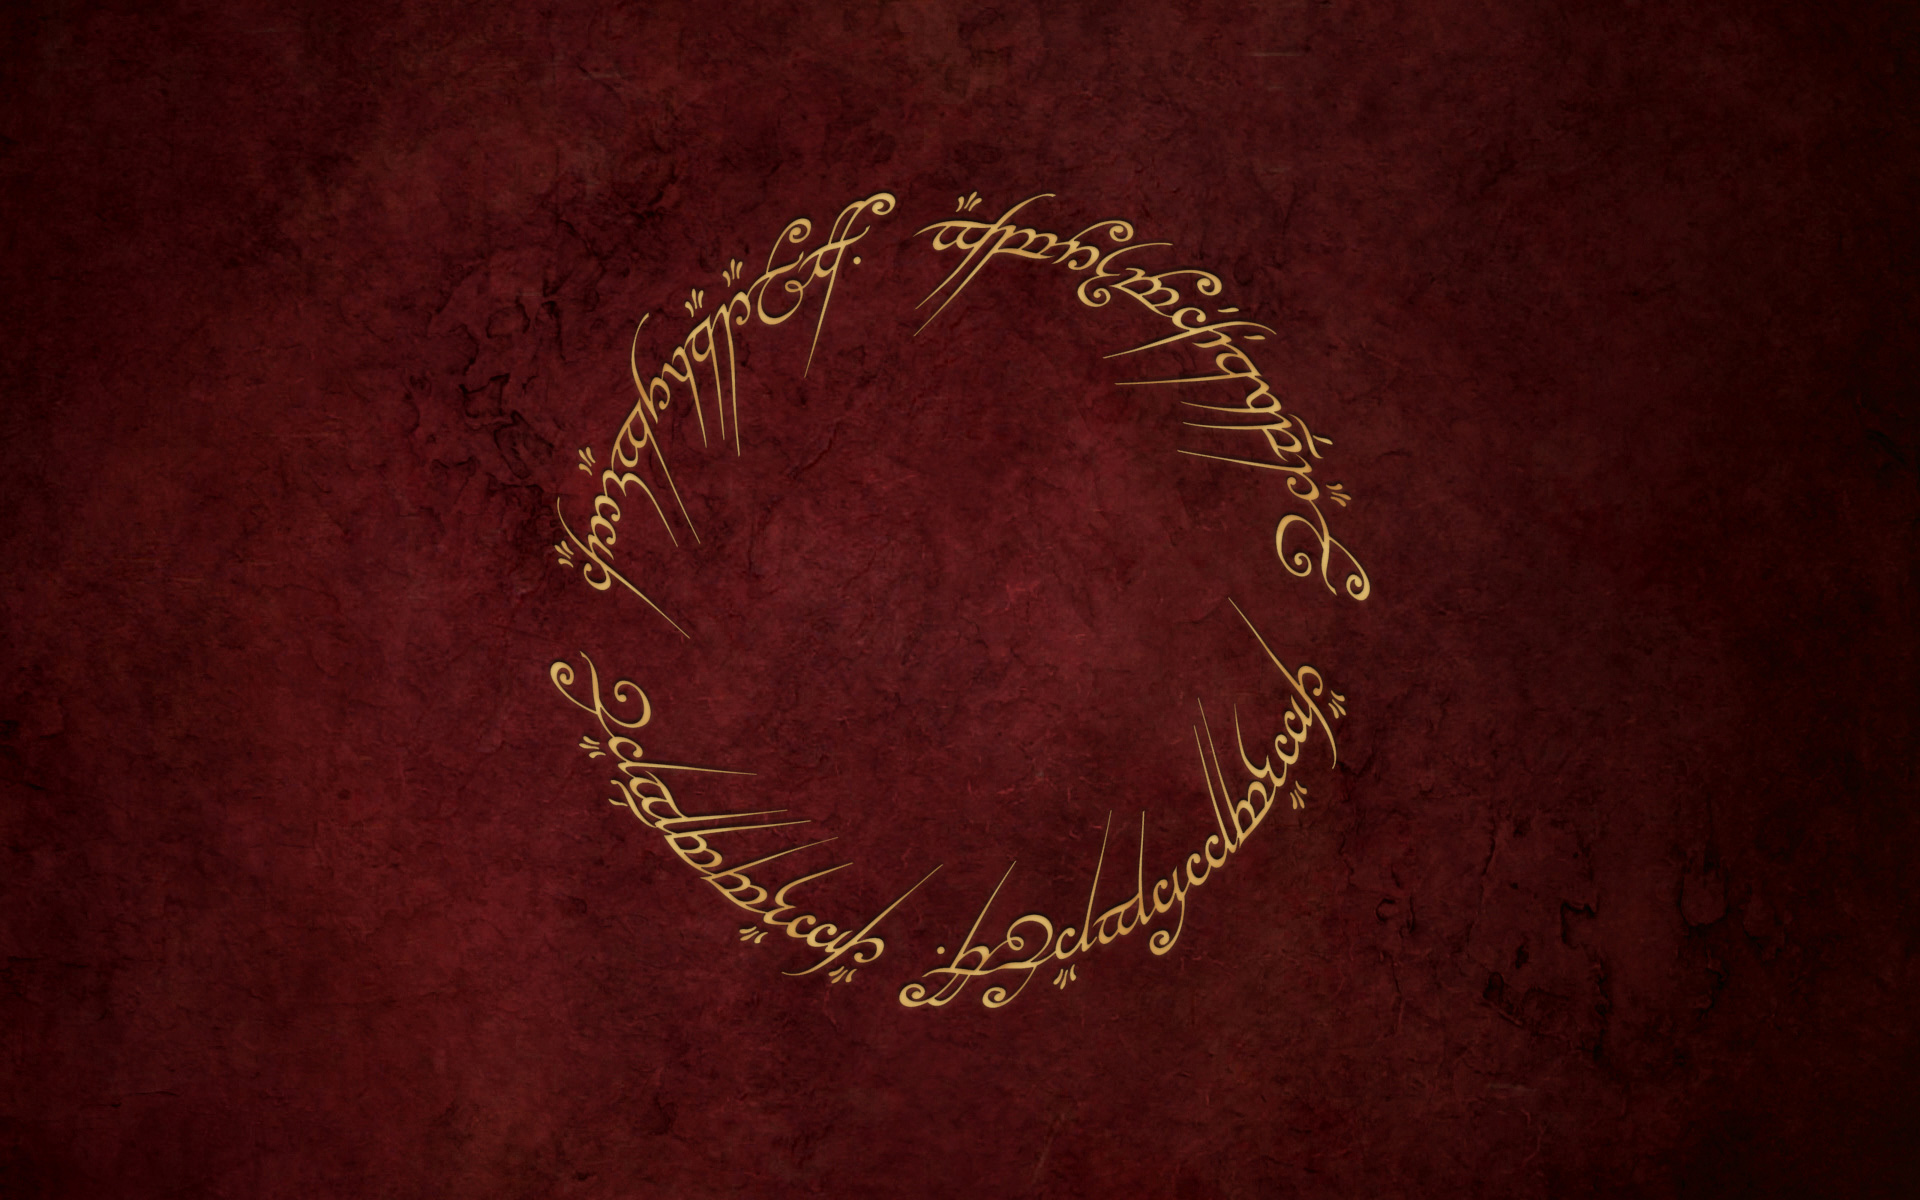 Plate with Ring (Lord of the Rings).